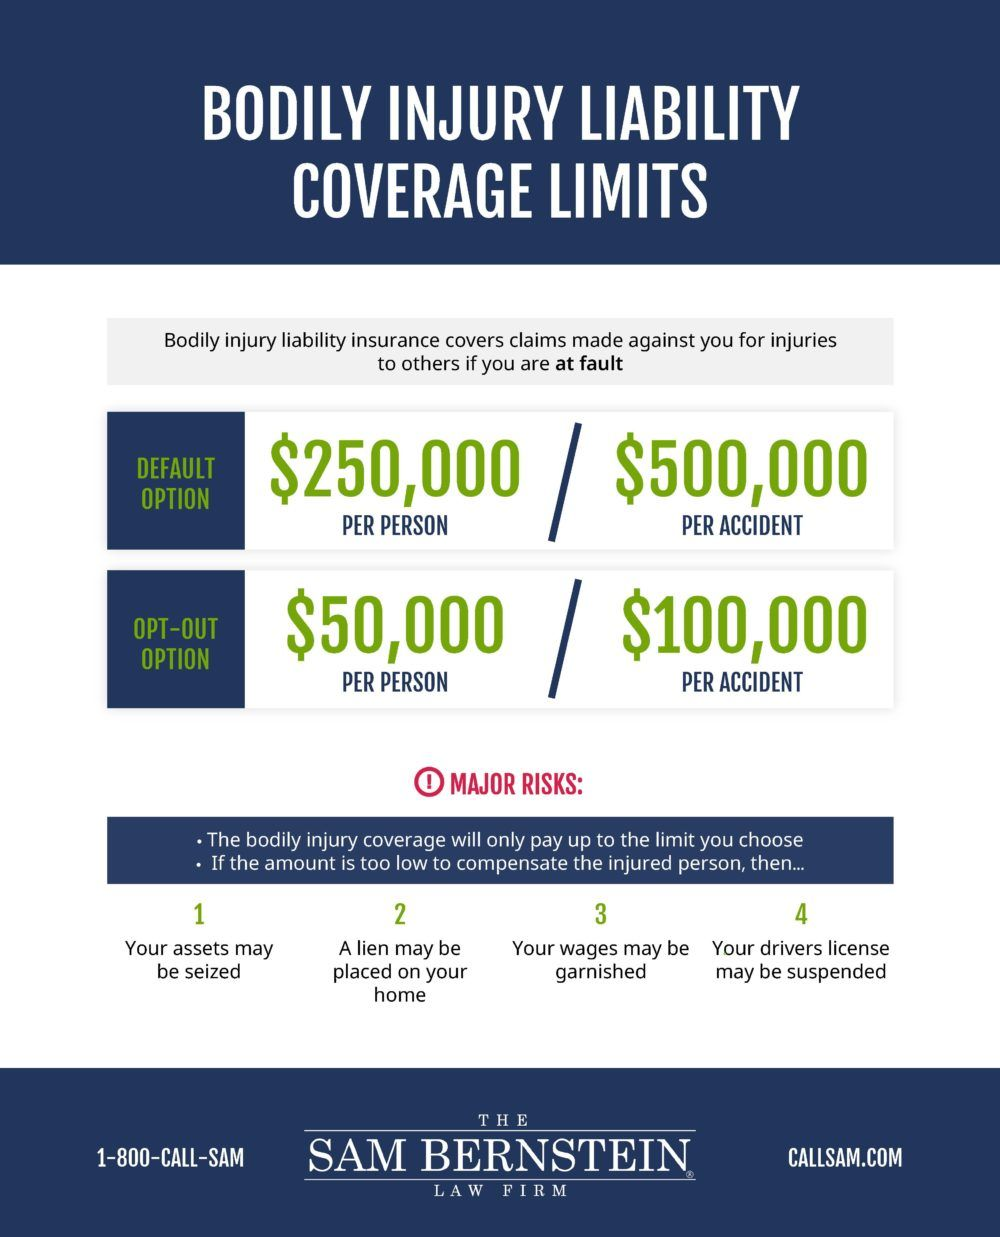 New No Fault Law The Sam Bernstein Law Firm Health Care Coverage Insurance Law Bodily Injury